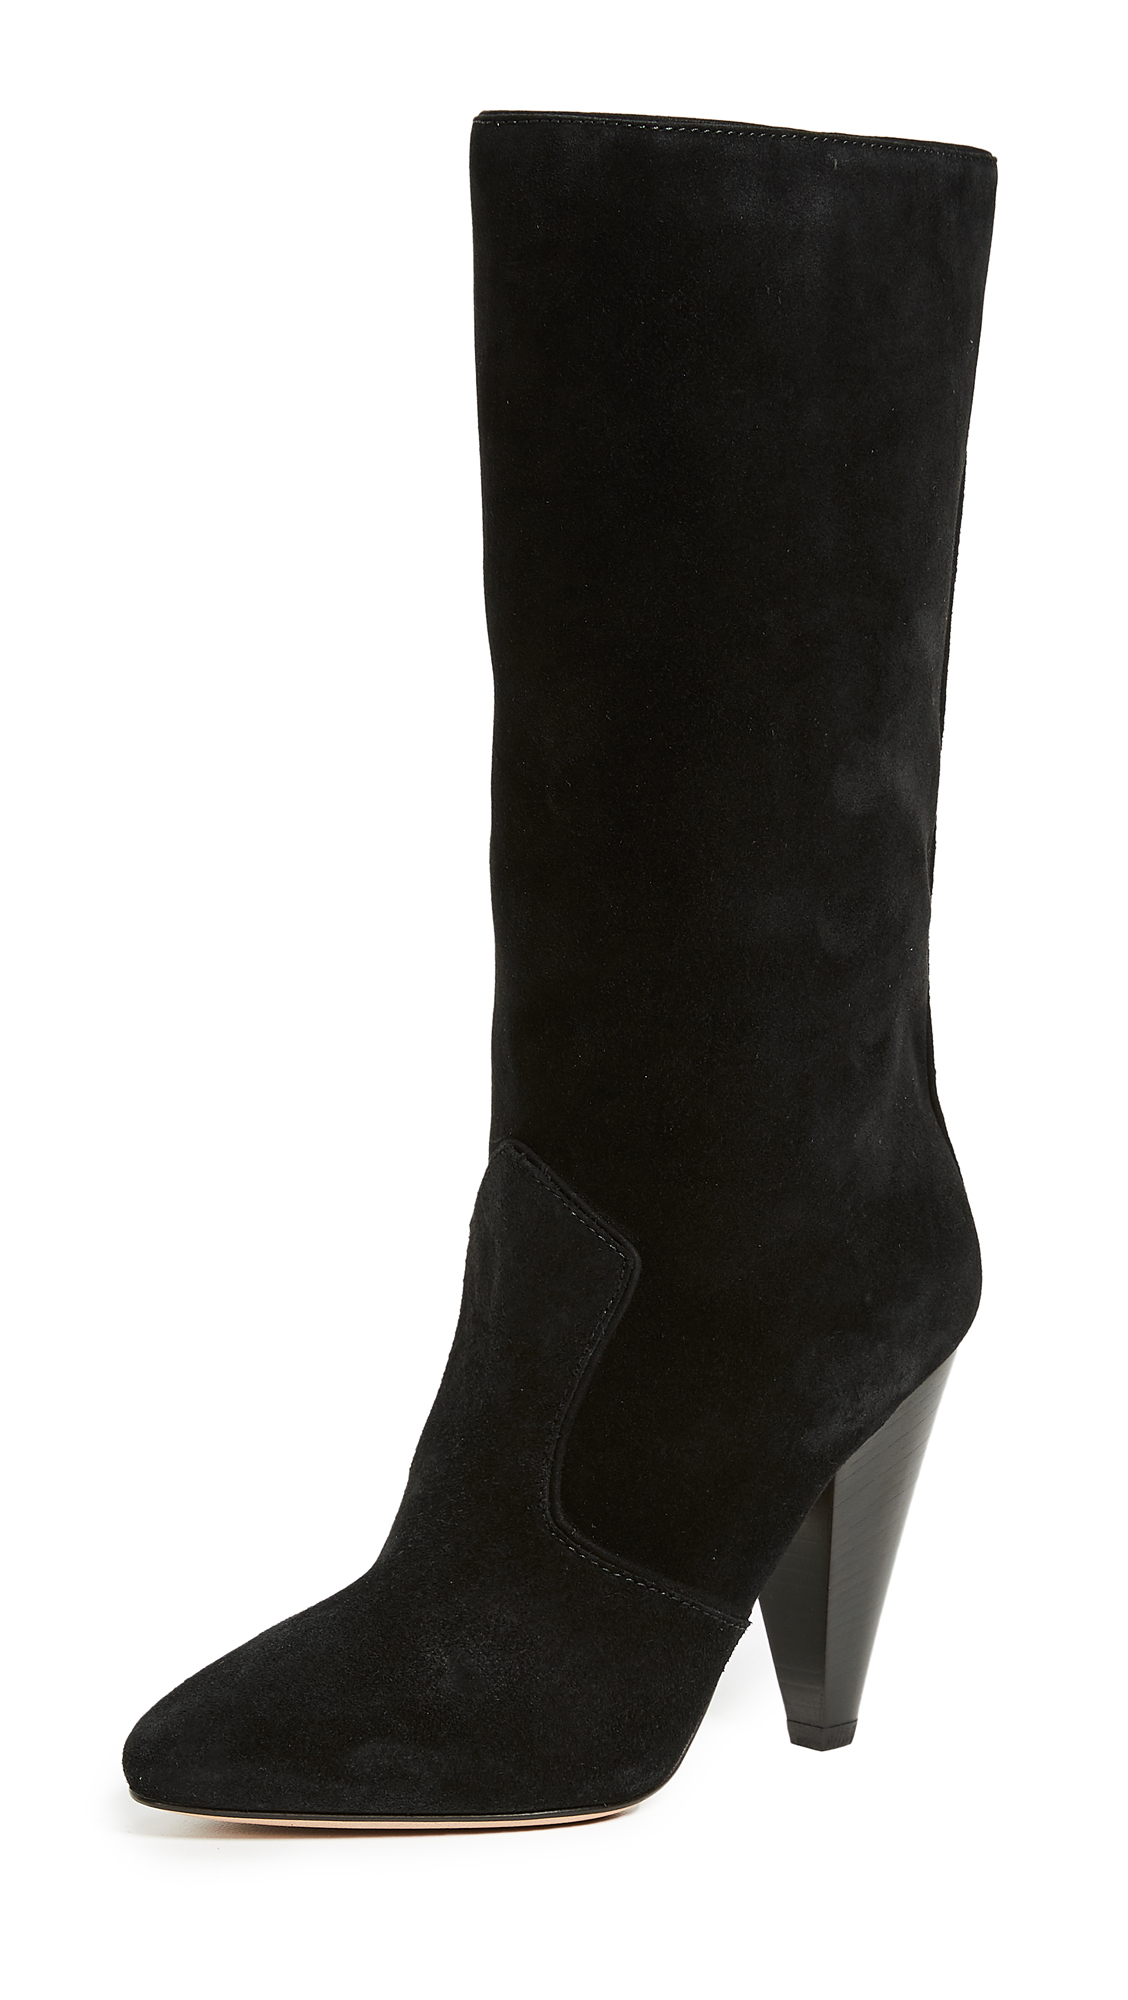 Veronica Beard Olivia Boots - Black